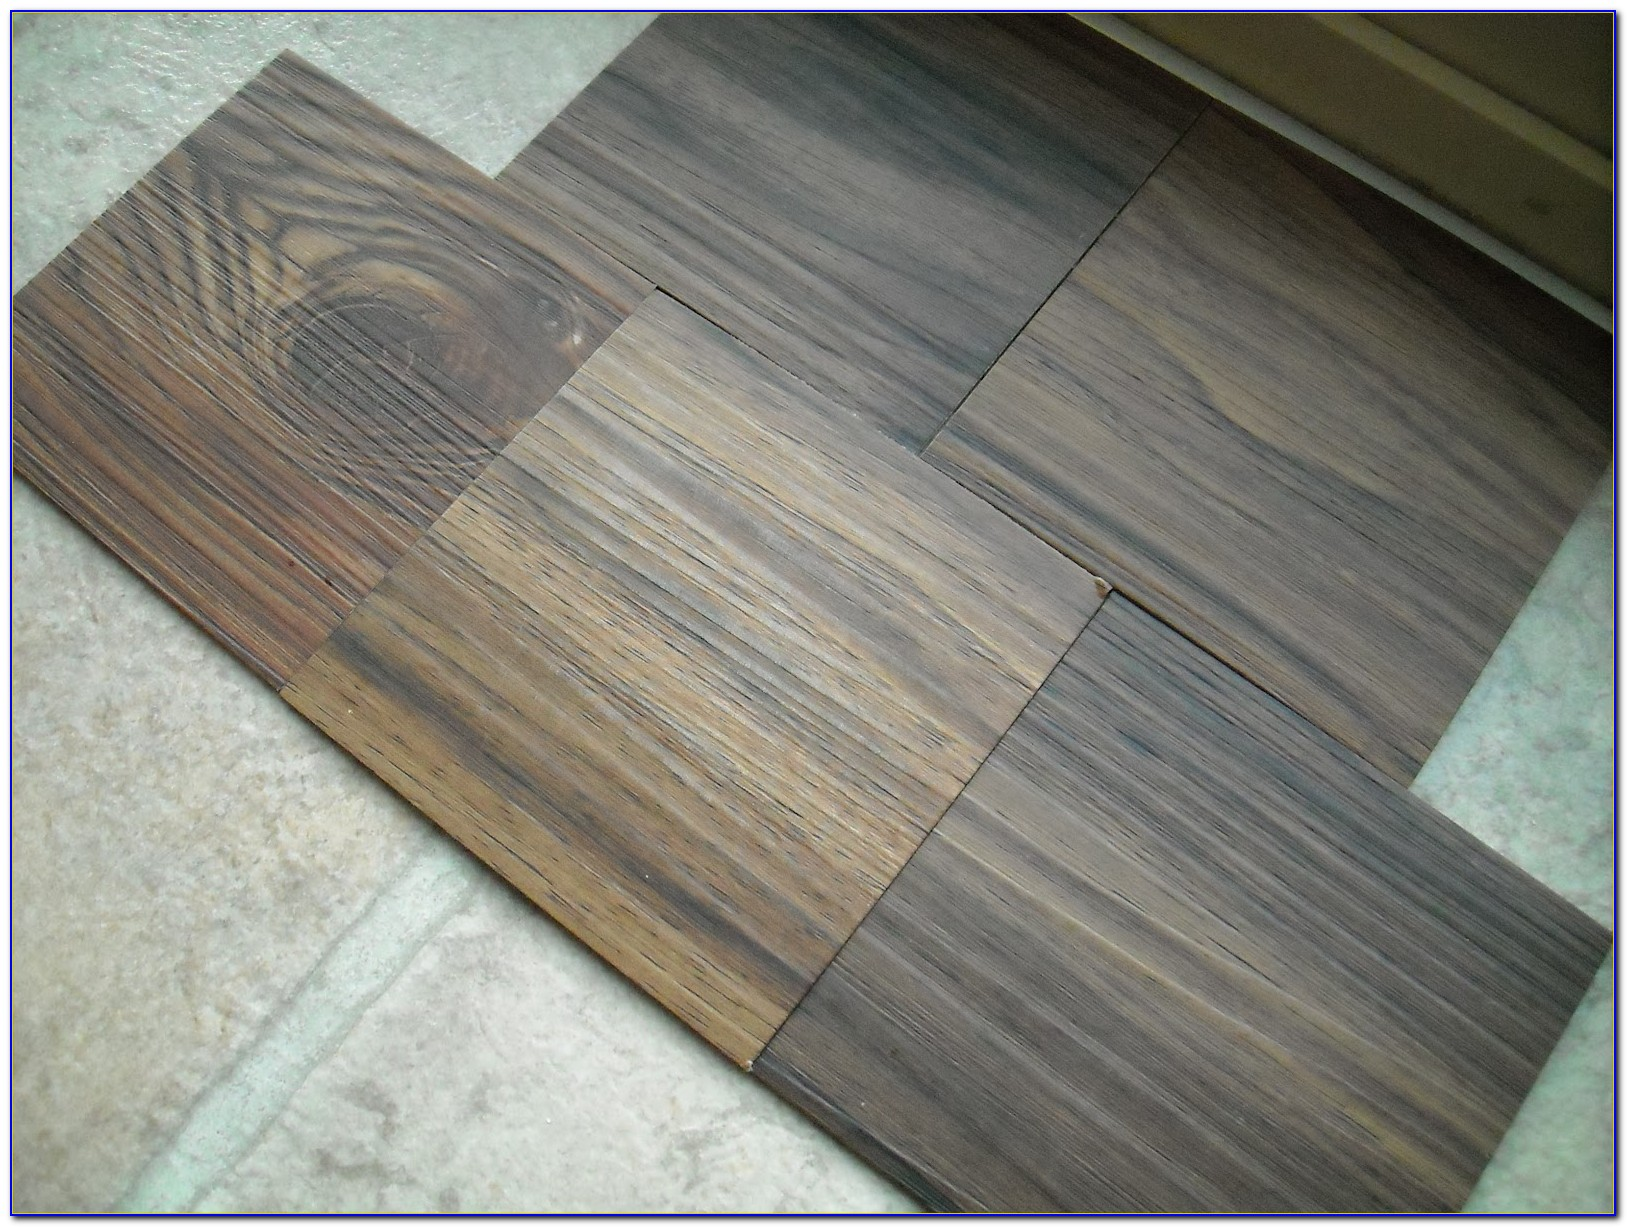 Trafficmaster Allure Vinyl Plank Flooring Cleaning